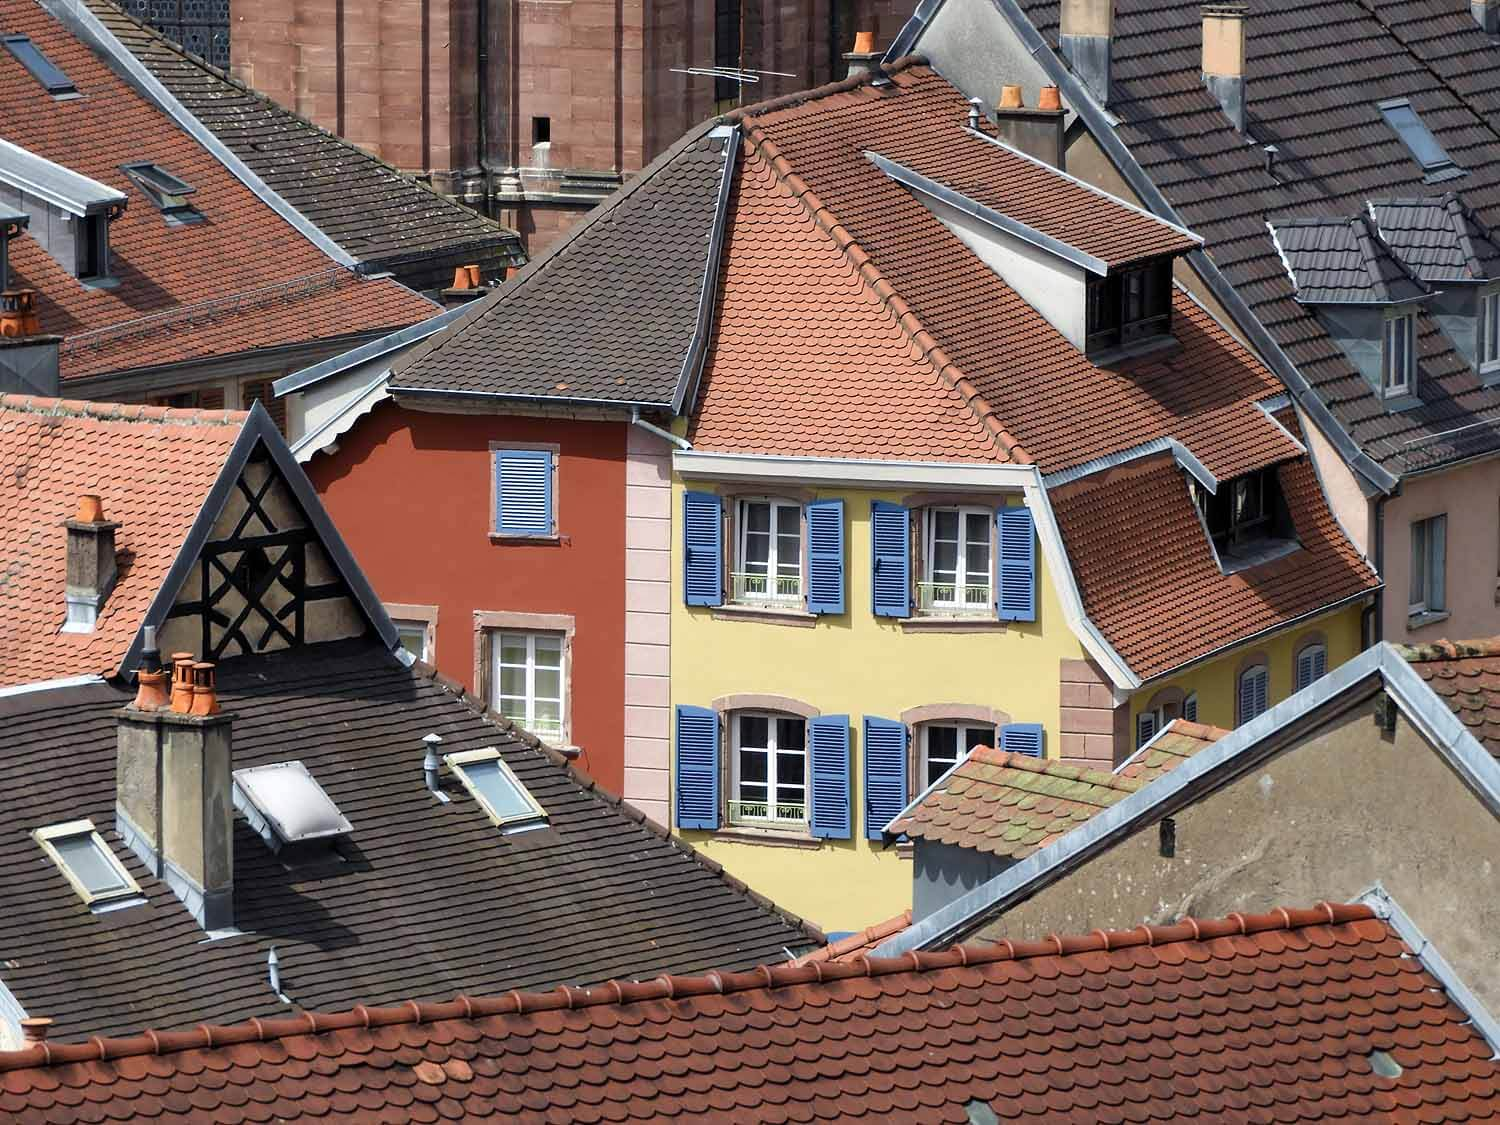 france-belfort-roofs-windows-shutters.JPG